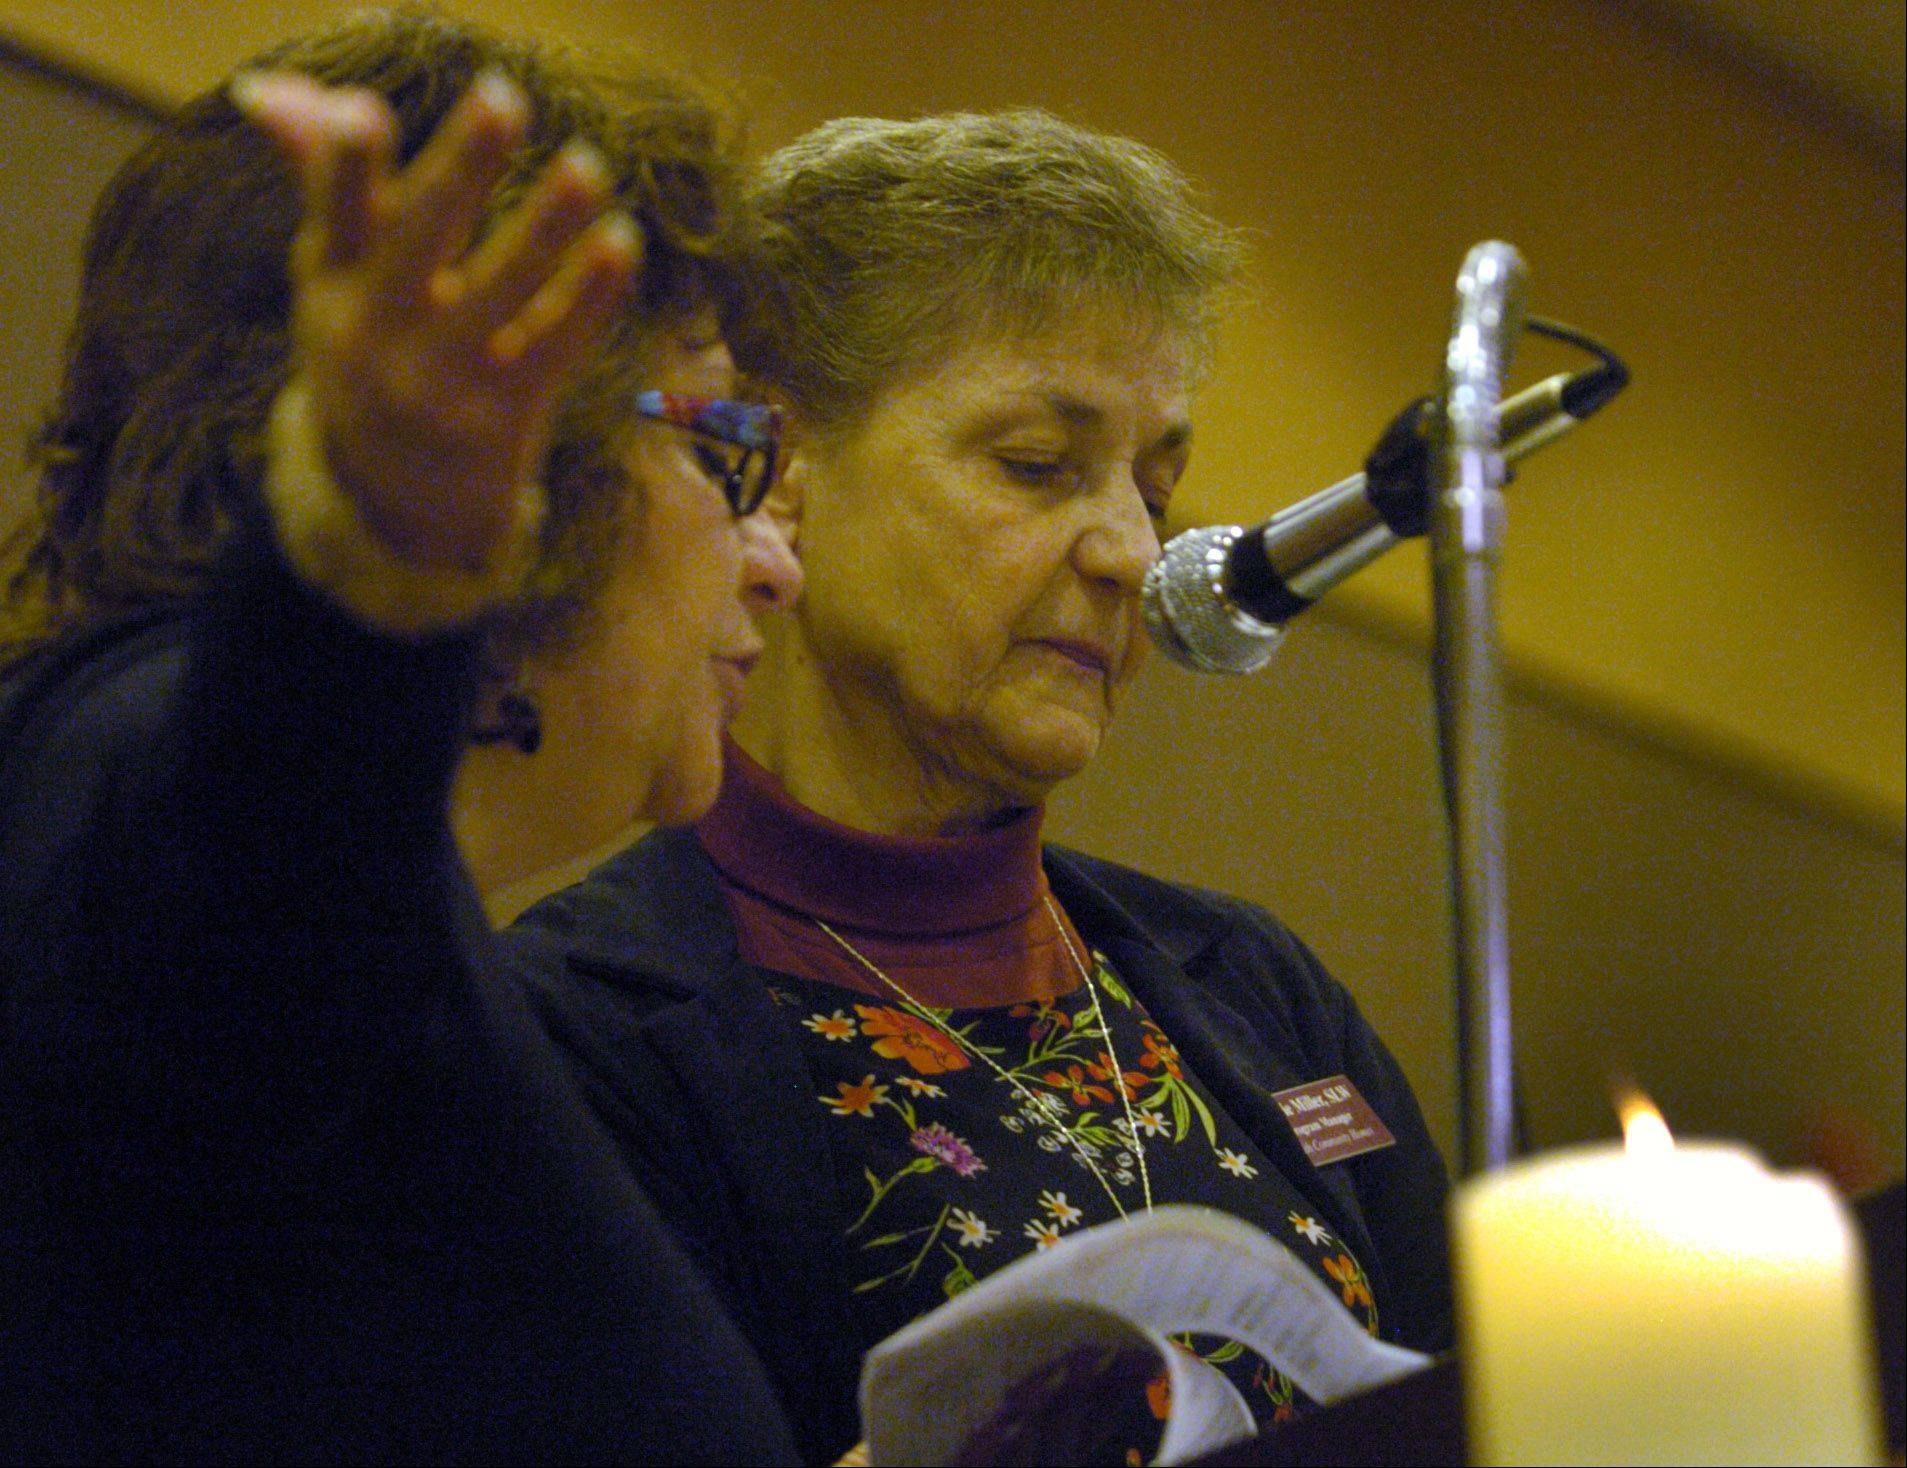 Sister Carrie Miller of the Sisters of the Living Word, and Lisa Math, left, deliver the Invocation at the Mayor's 26th annual Community Prayer Breakfast in Arlington Heights.